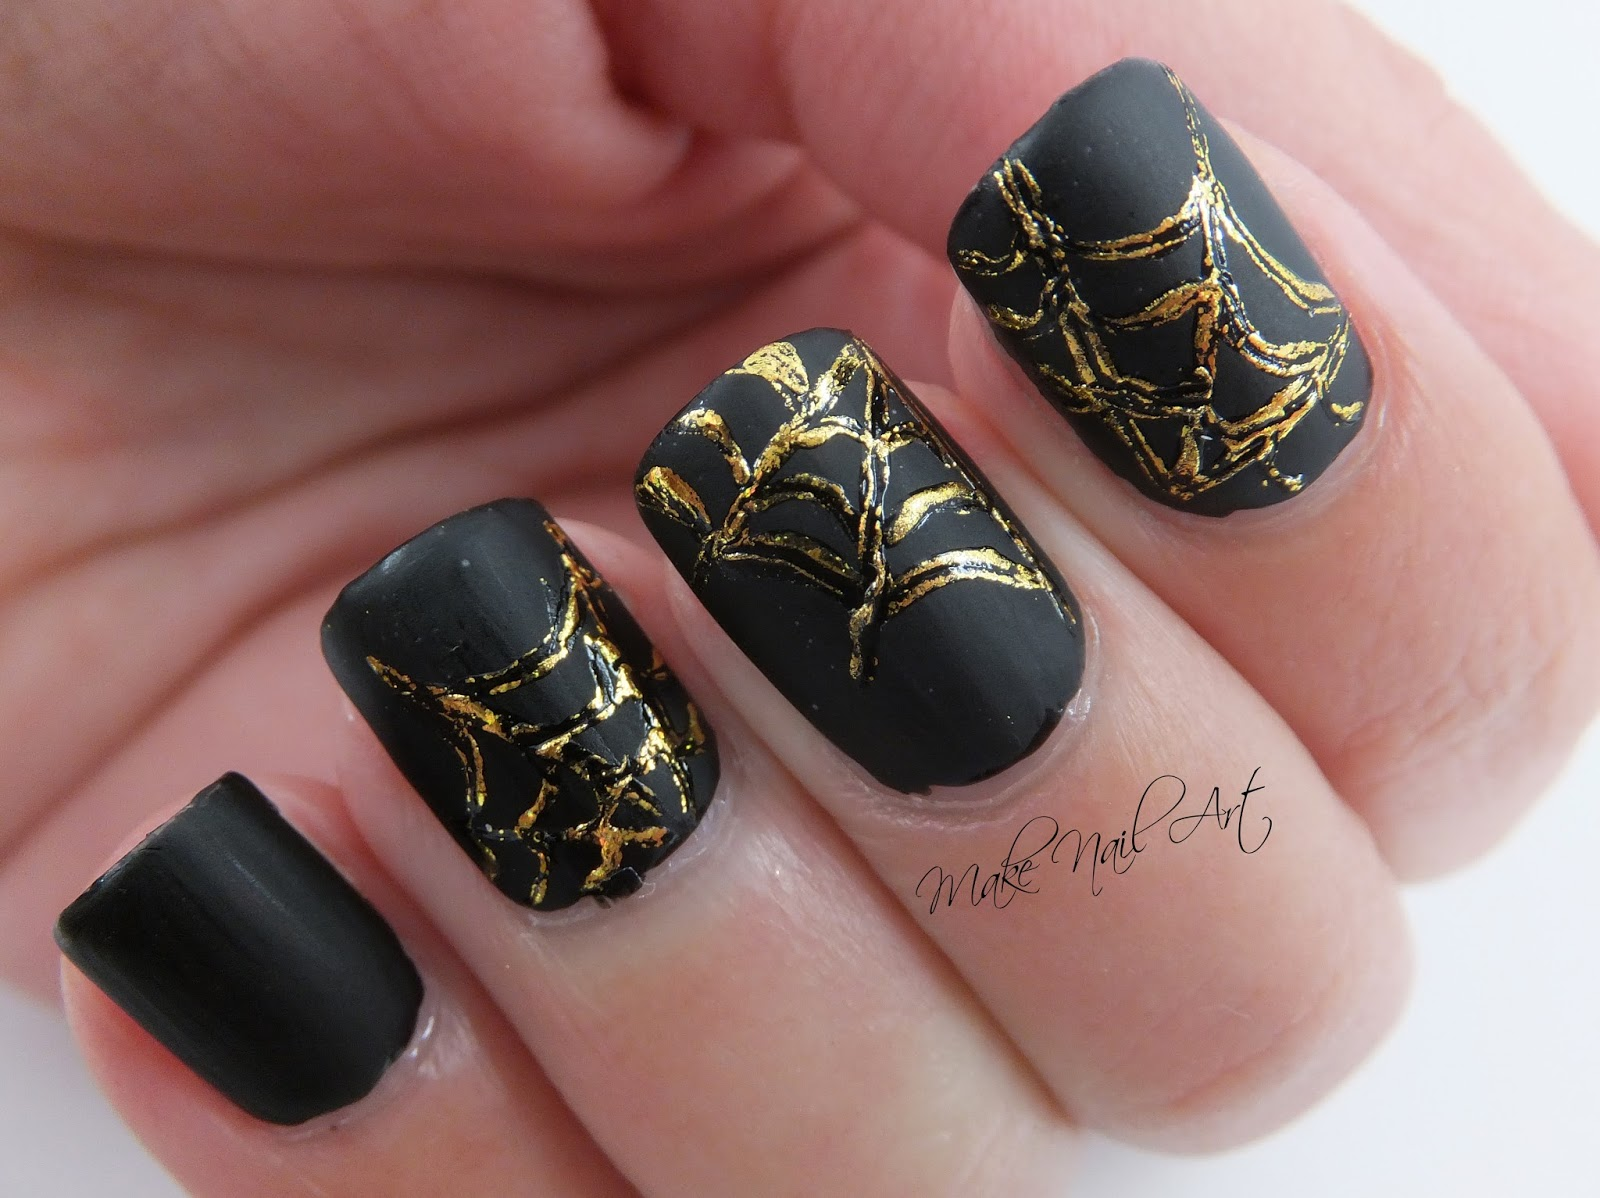 I Really Like How This Halloween Manicure Turned Out The Gold Foil Looks Very Good Over Matte Black Backgroung Hope Youll It Too